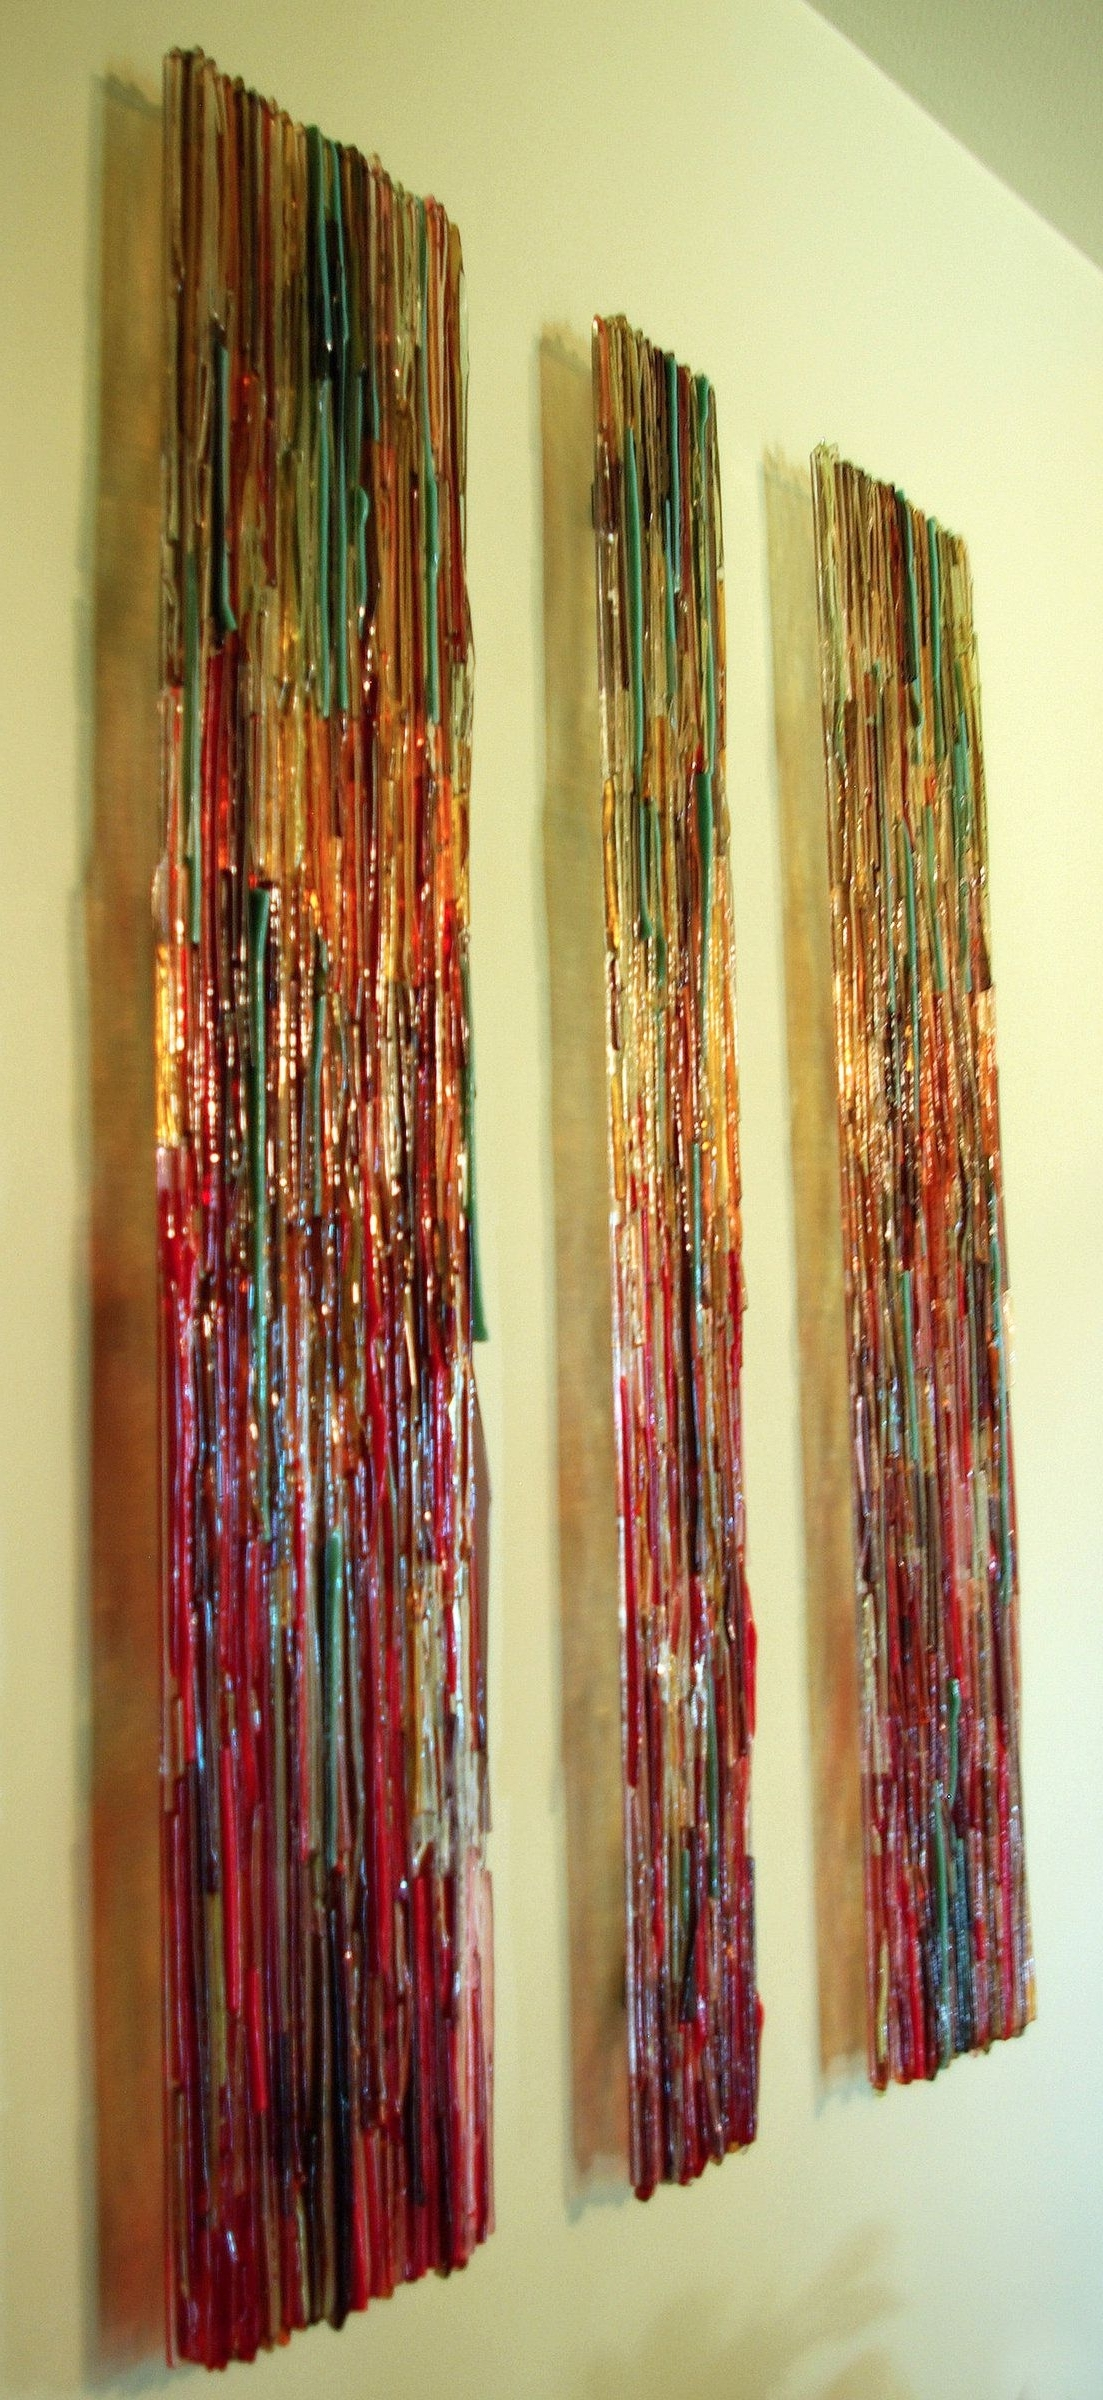 Recent Transpire Wall Panels: Sarinda Jones: Art Glass Wall Art – Artful For Fused Glass Wall Art Panels (View 2 of 15)